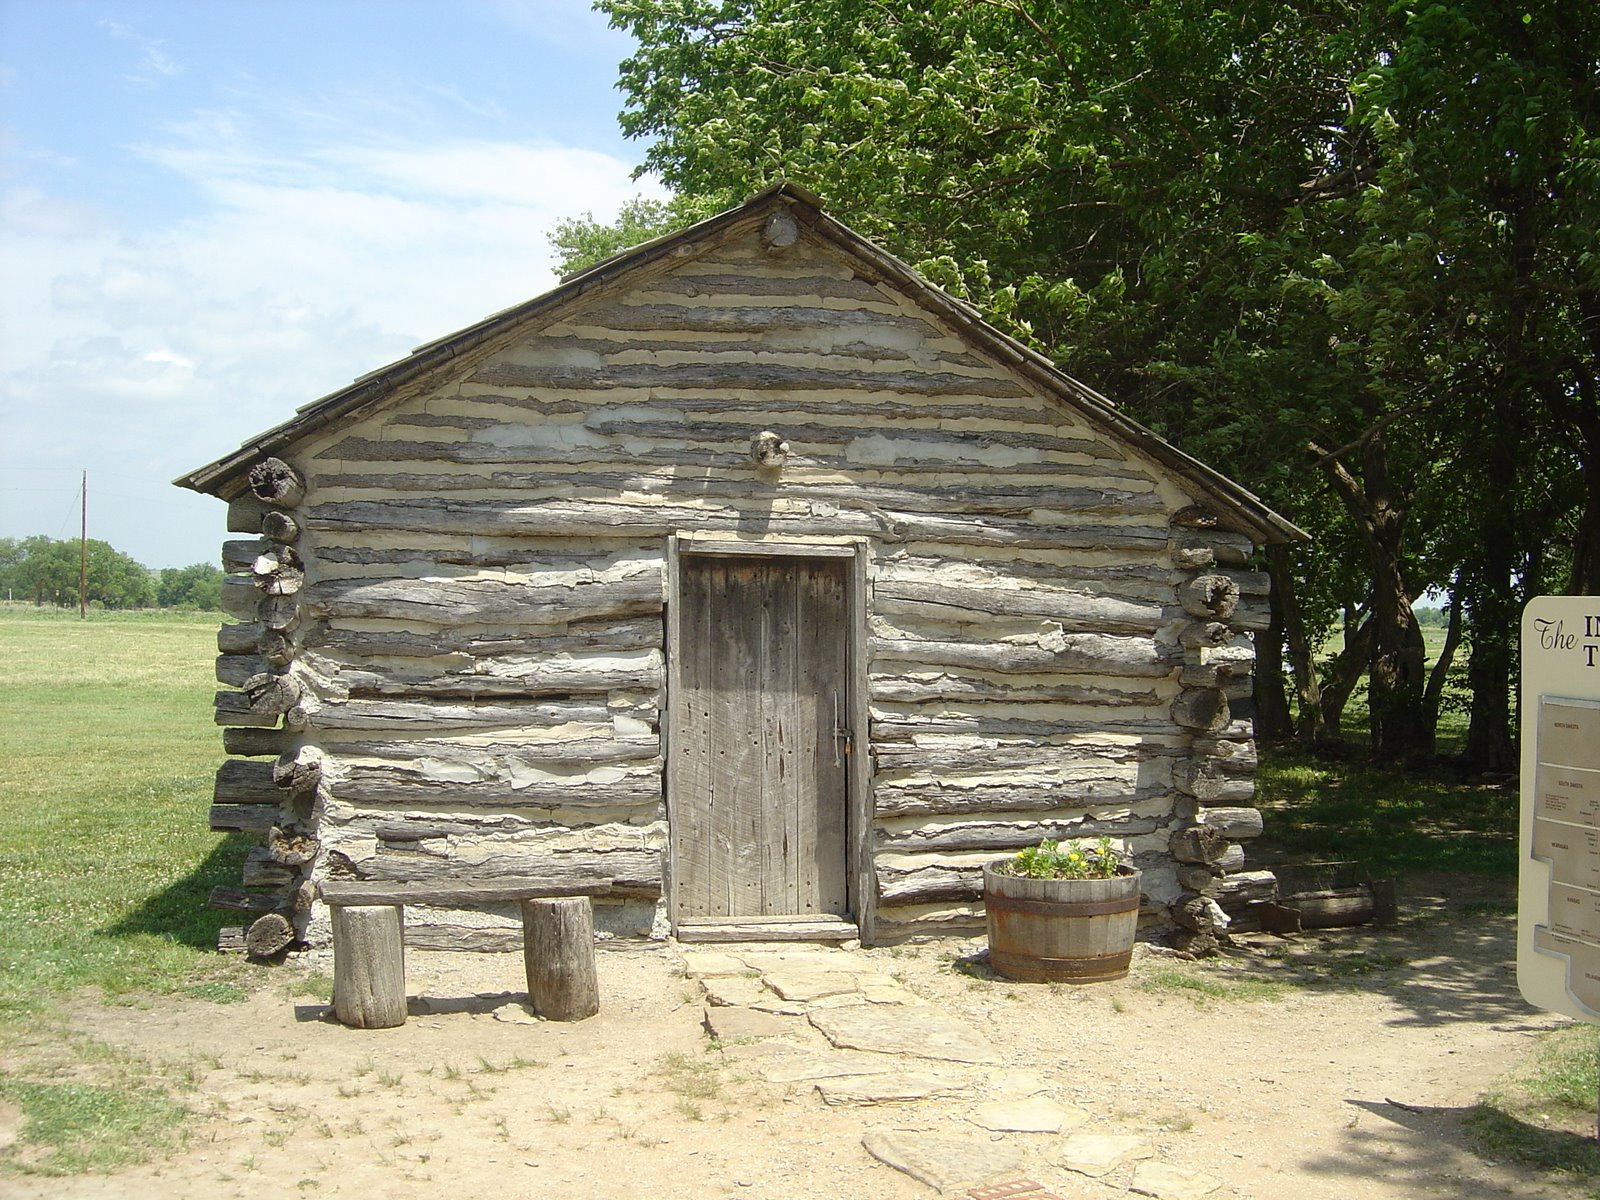 of the Ingalls' home in Indian Territory near Independence, Kansas